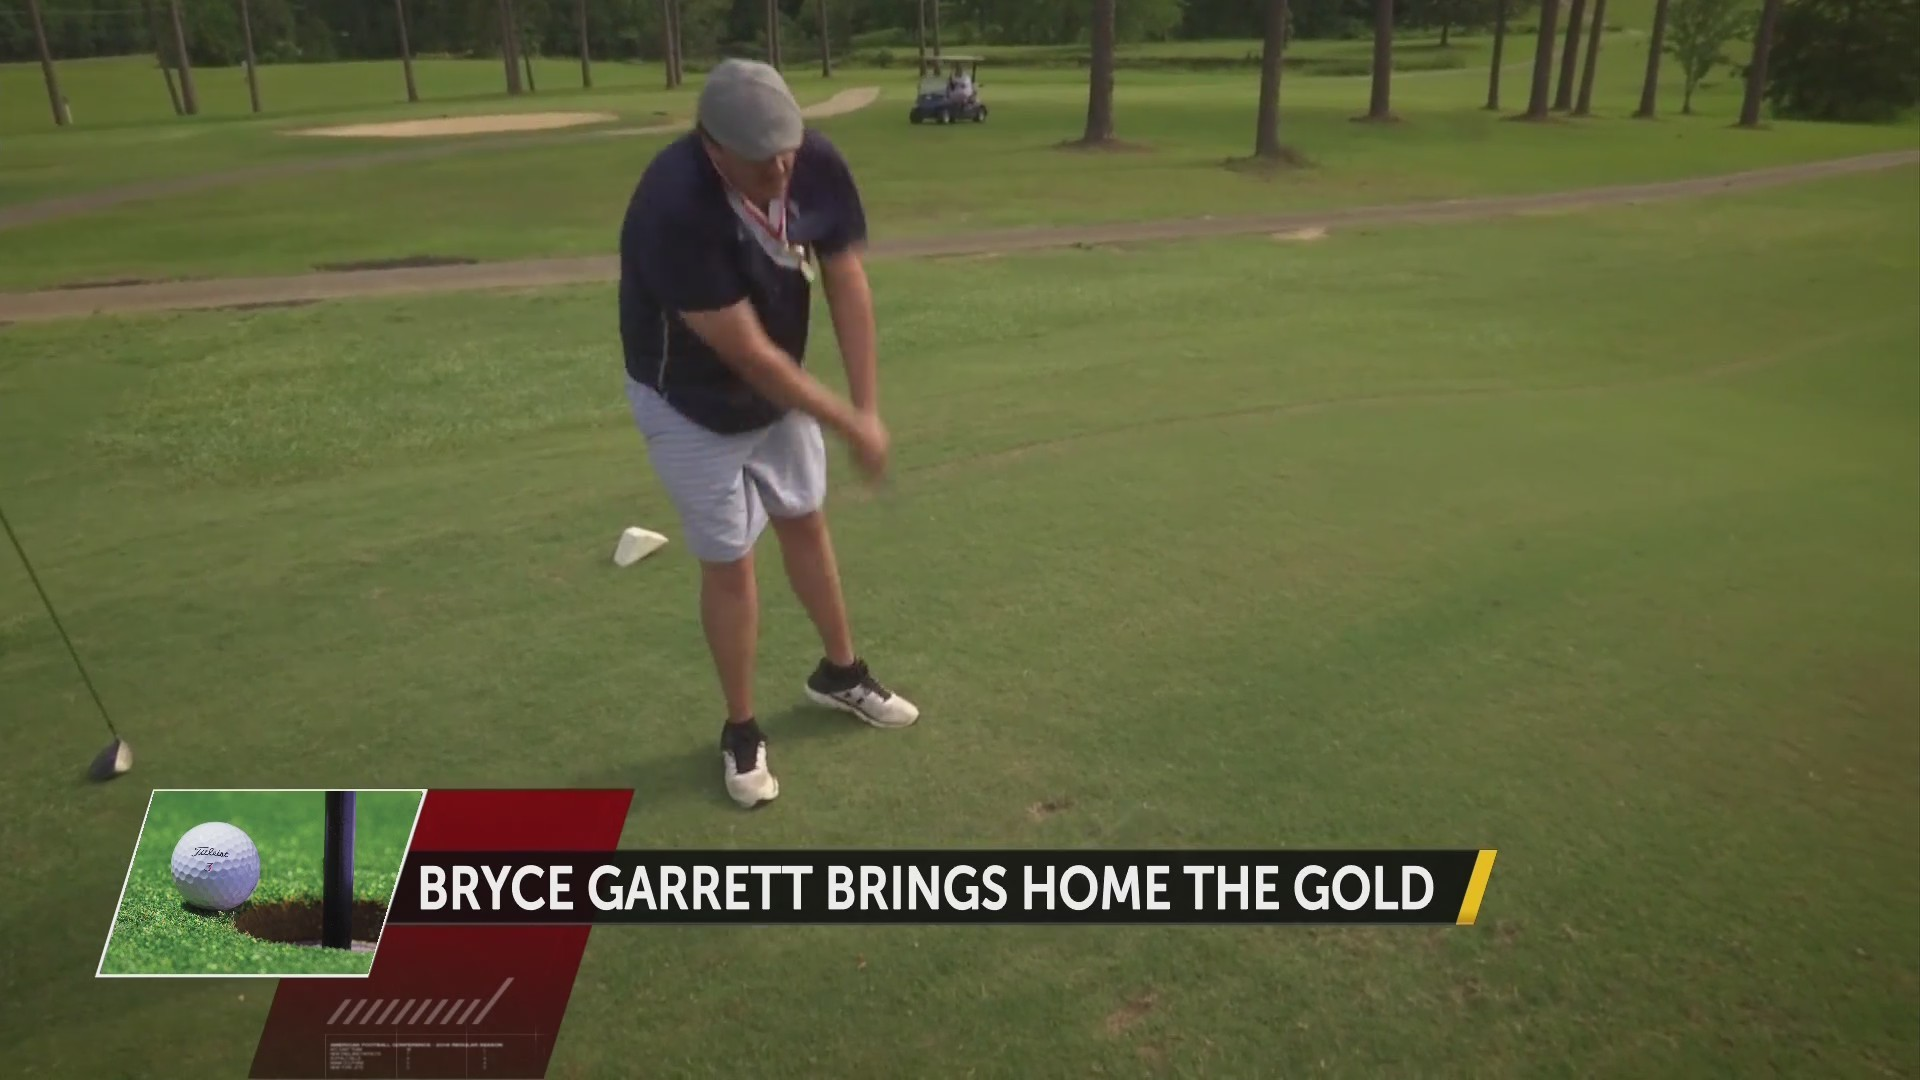 Bryce Garret Golf Gold Medal